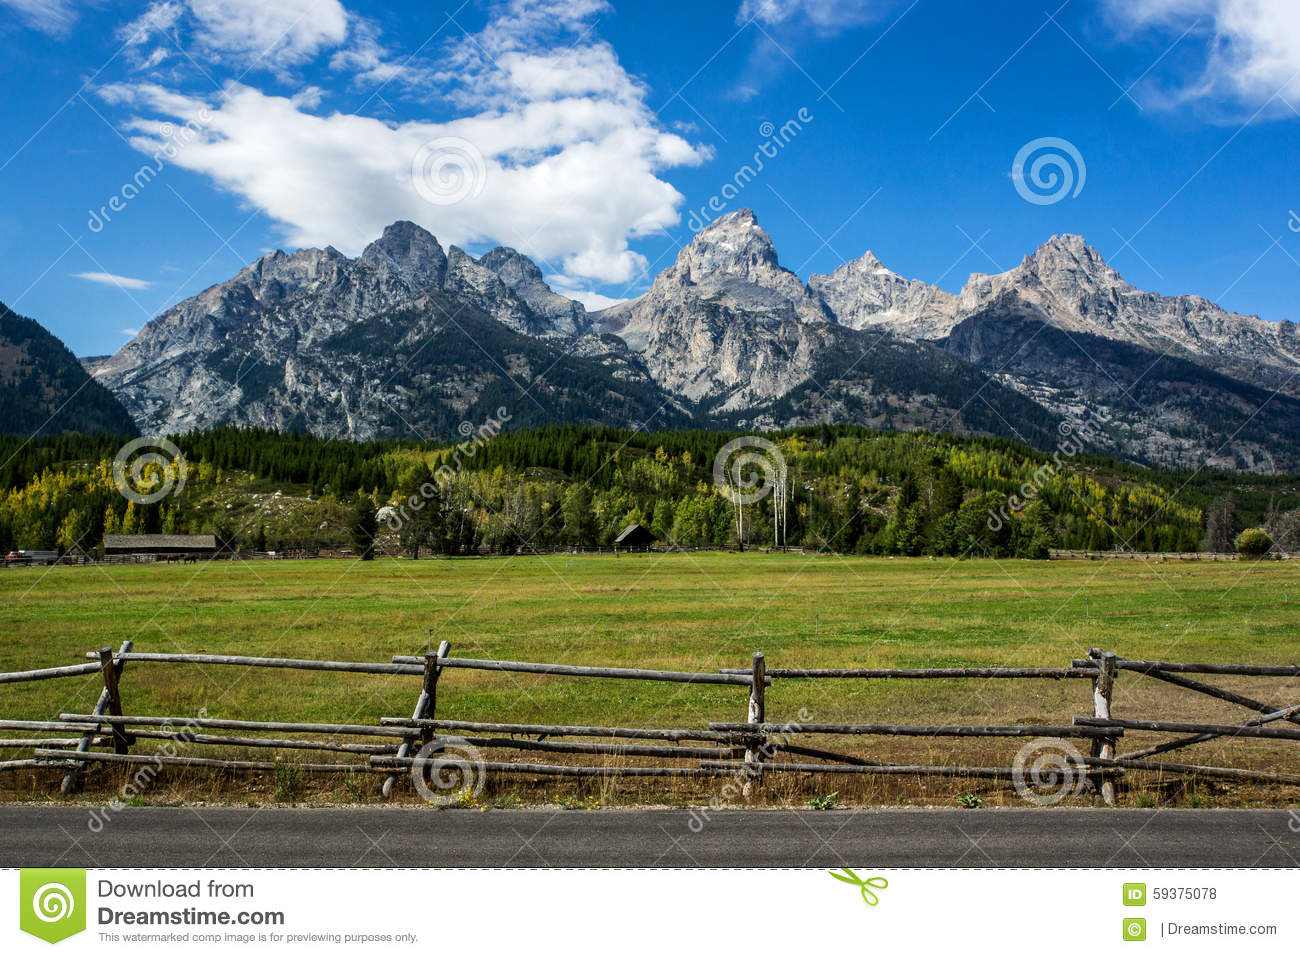 Scenery of the American West